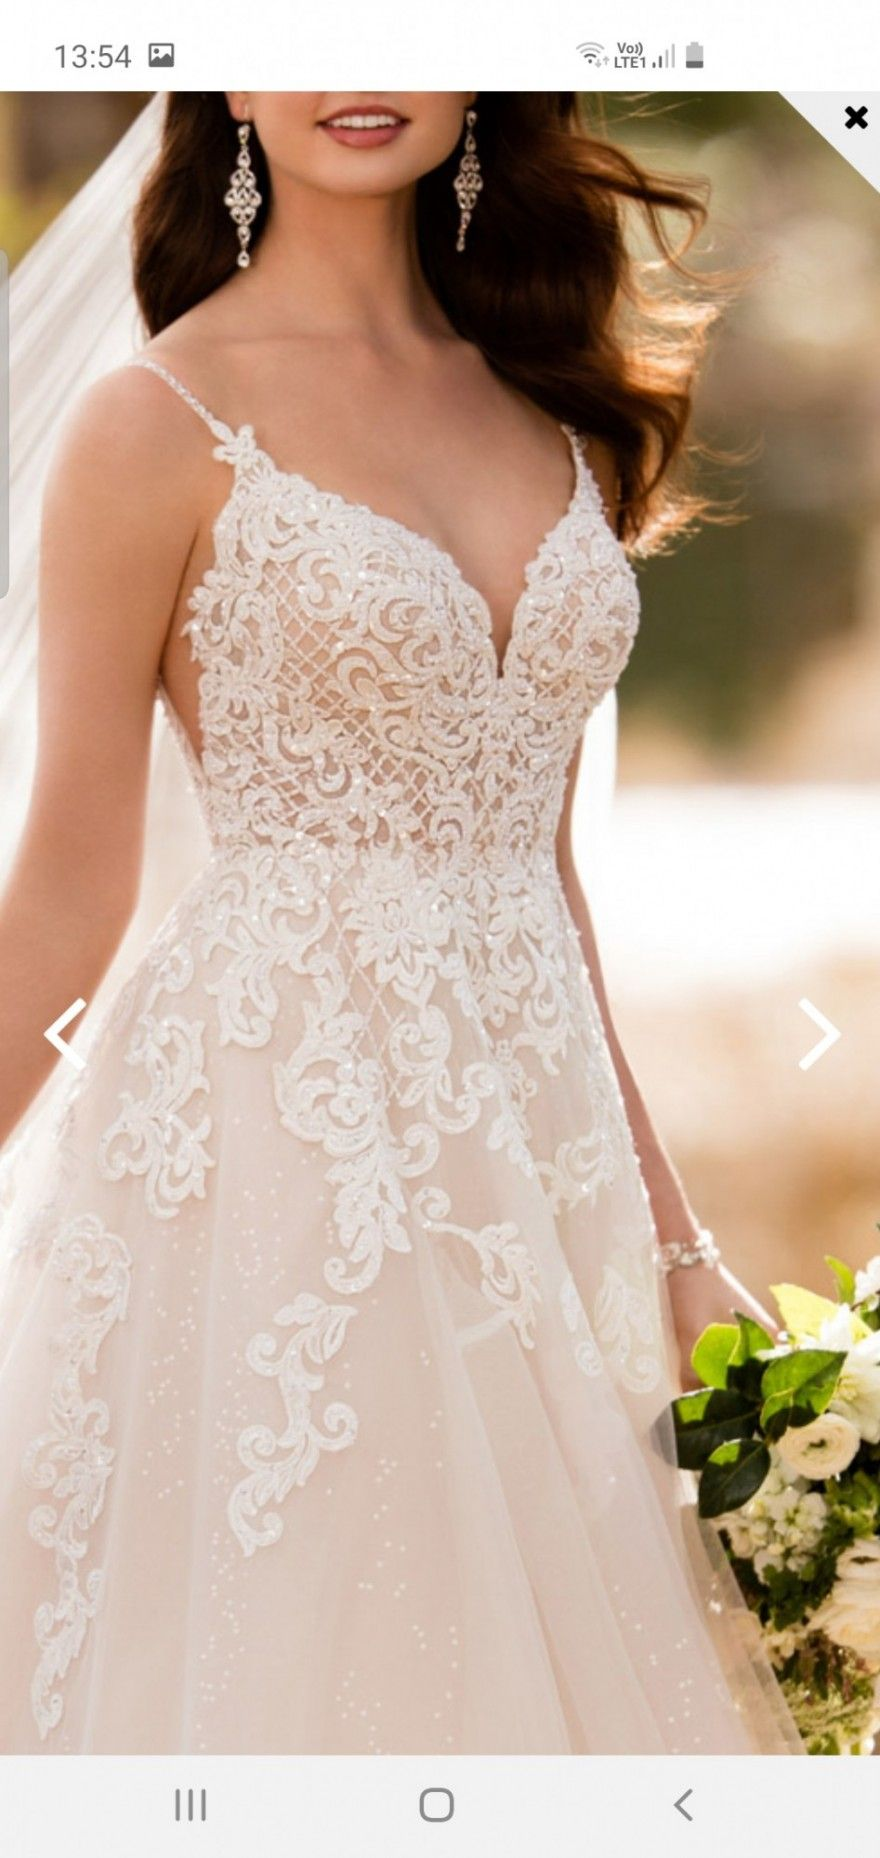 View Preloved Wedding Items For Sale And Hire In 2020 Essence Of Australia Wedding Dress Size 12 Wedding Dress Wedding Dress Sizes [ 1858 x 880 Pixel ]